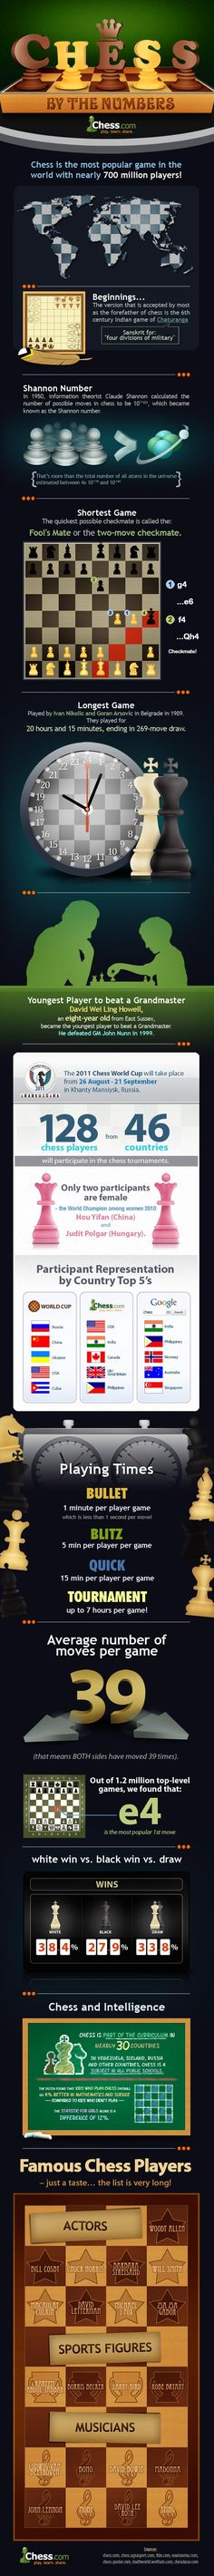 Chess by the numbers